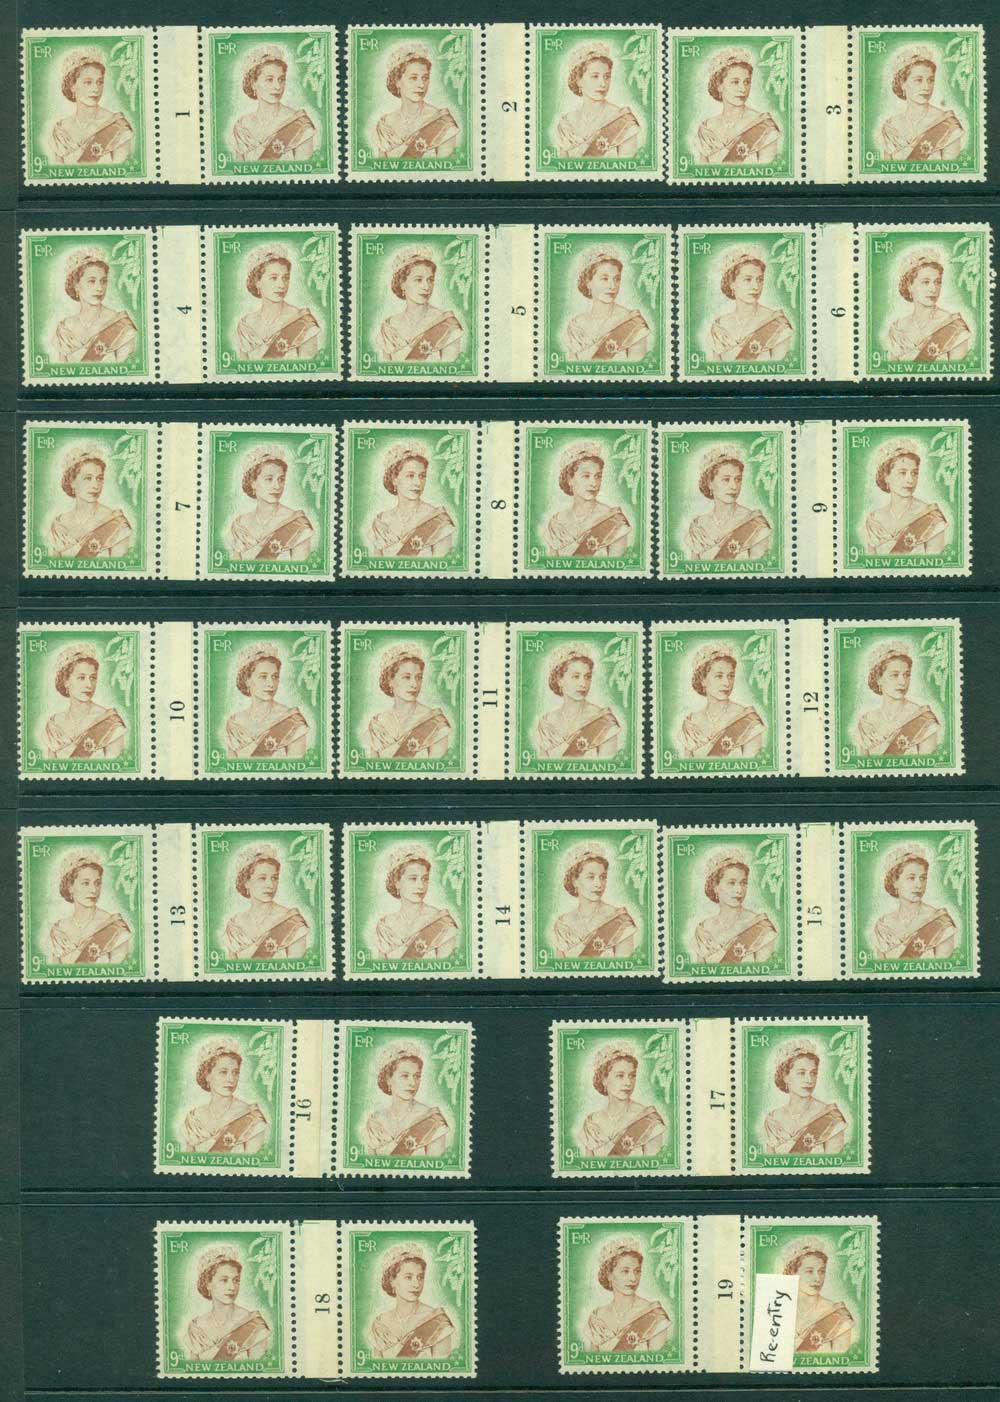 New Zealand 1954 QEII 9d Brown & Green Coil Join #1-19 pairs number sideways reading upwards MH/MUH Lot25736